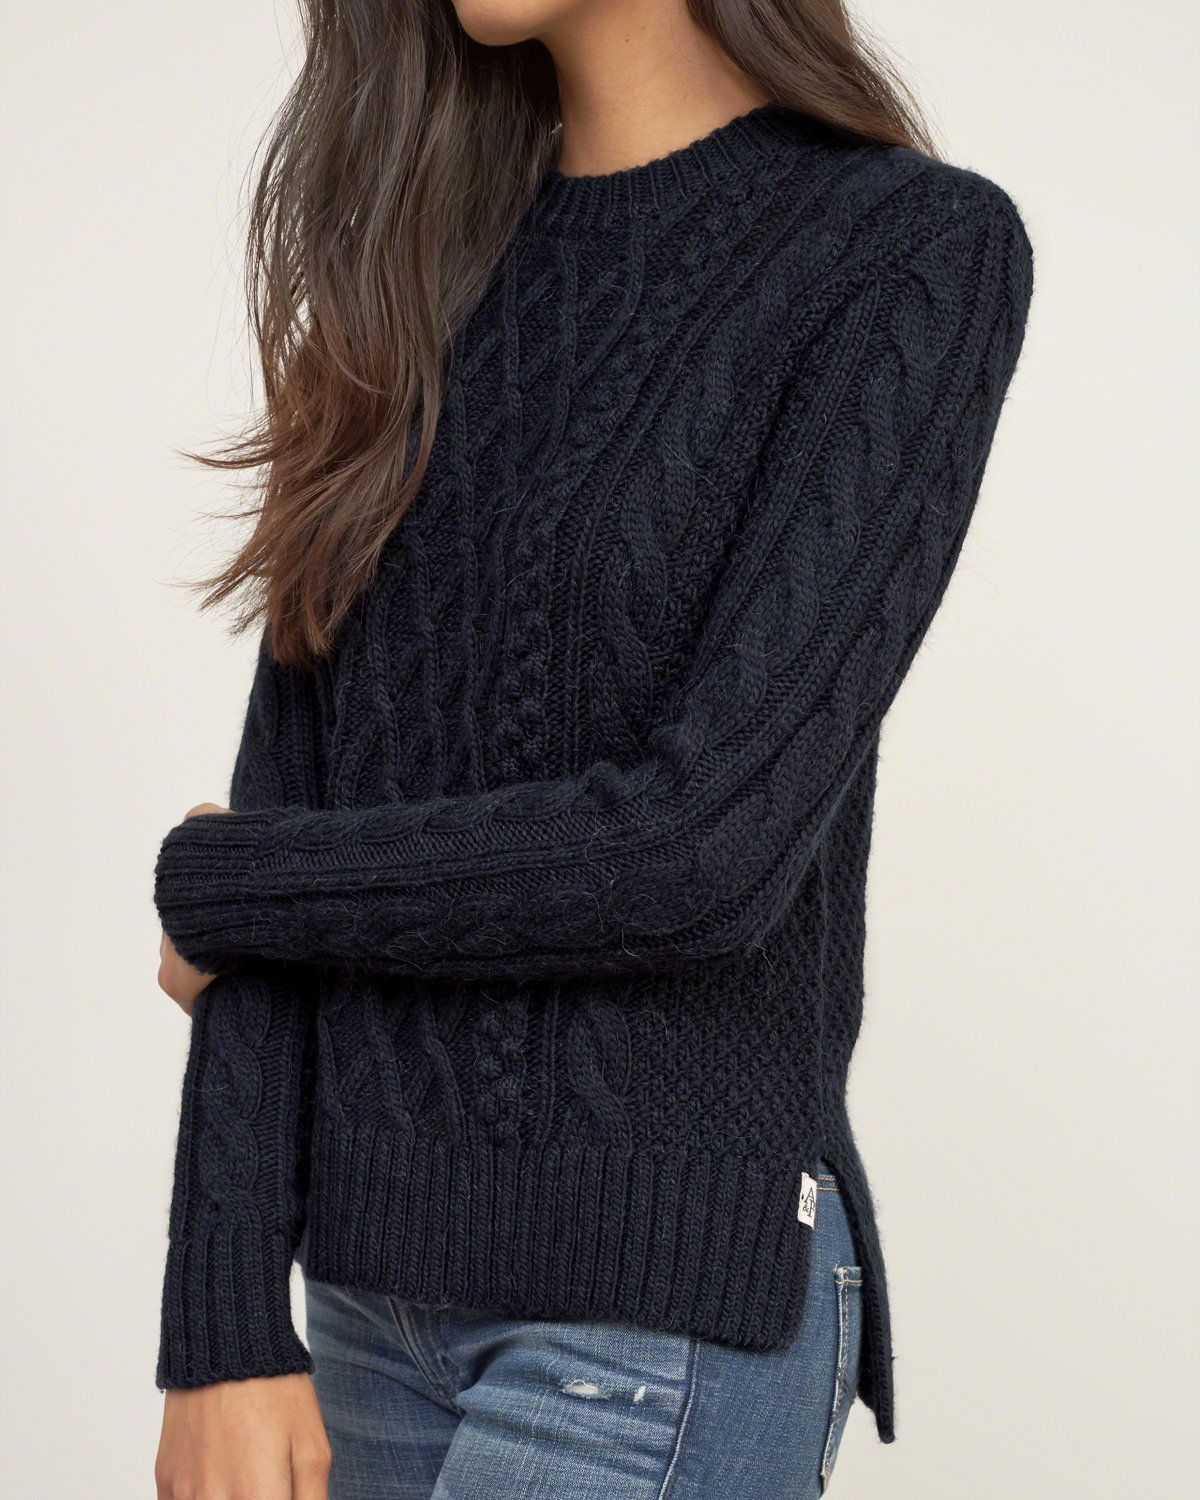 343b7085a3401 black knitted jumper womens - Google Search. black knitted jumper womens - Google  Search Sweaters Knitted